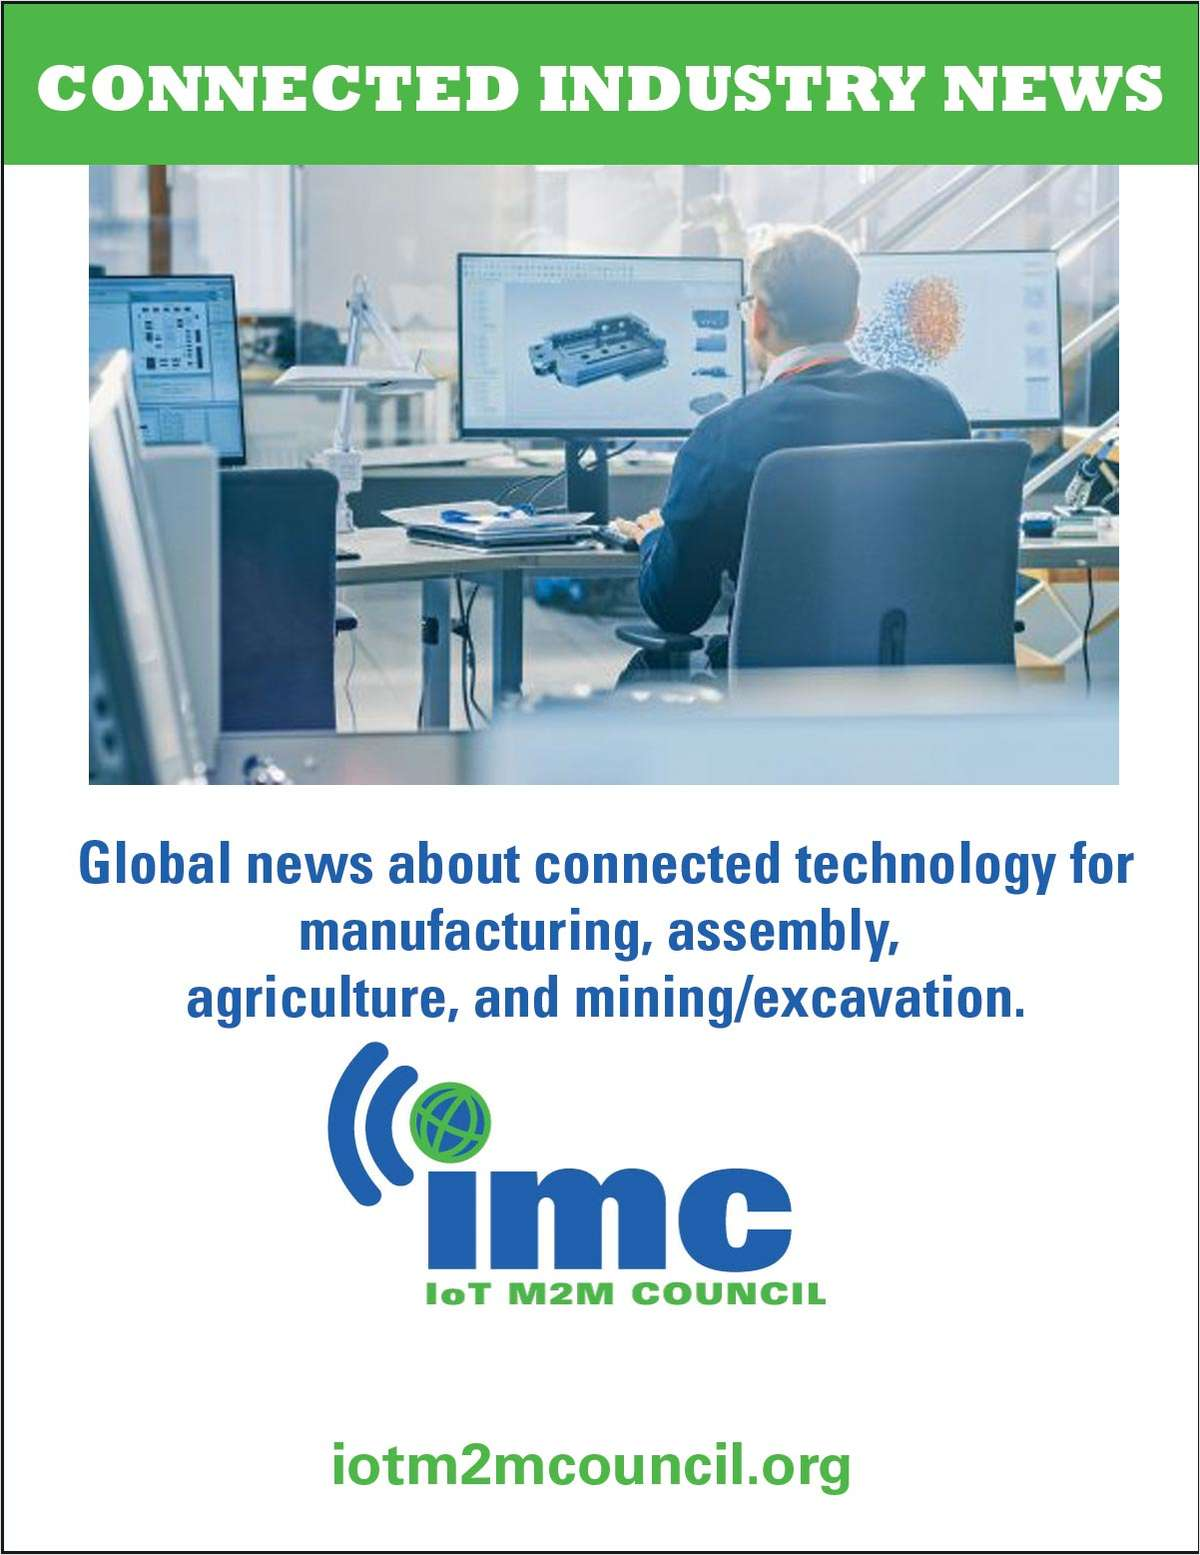 CONNECTED INDUSTRIES NEWS